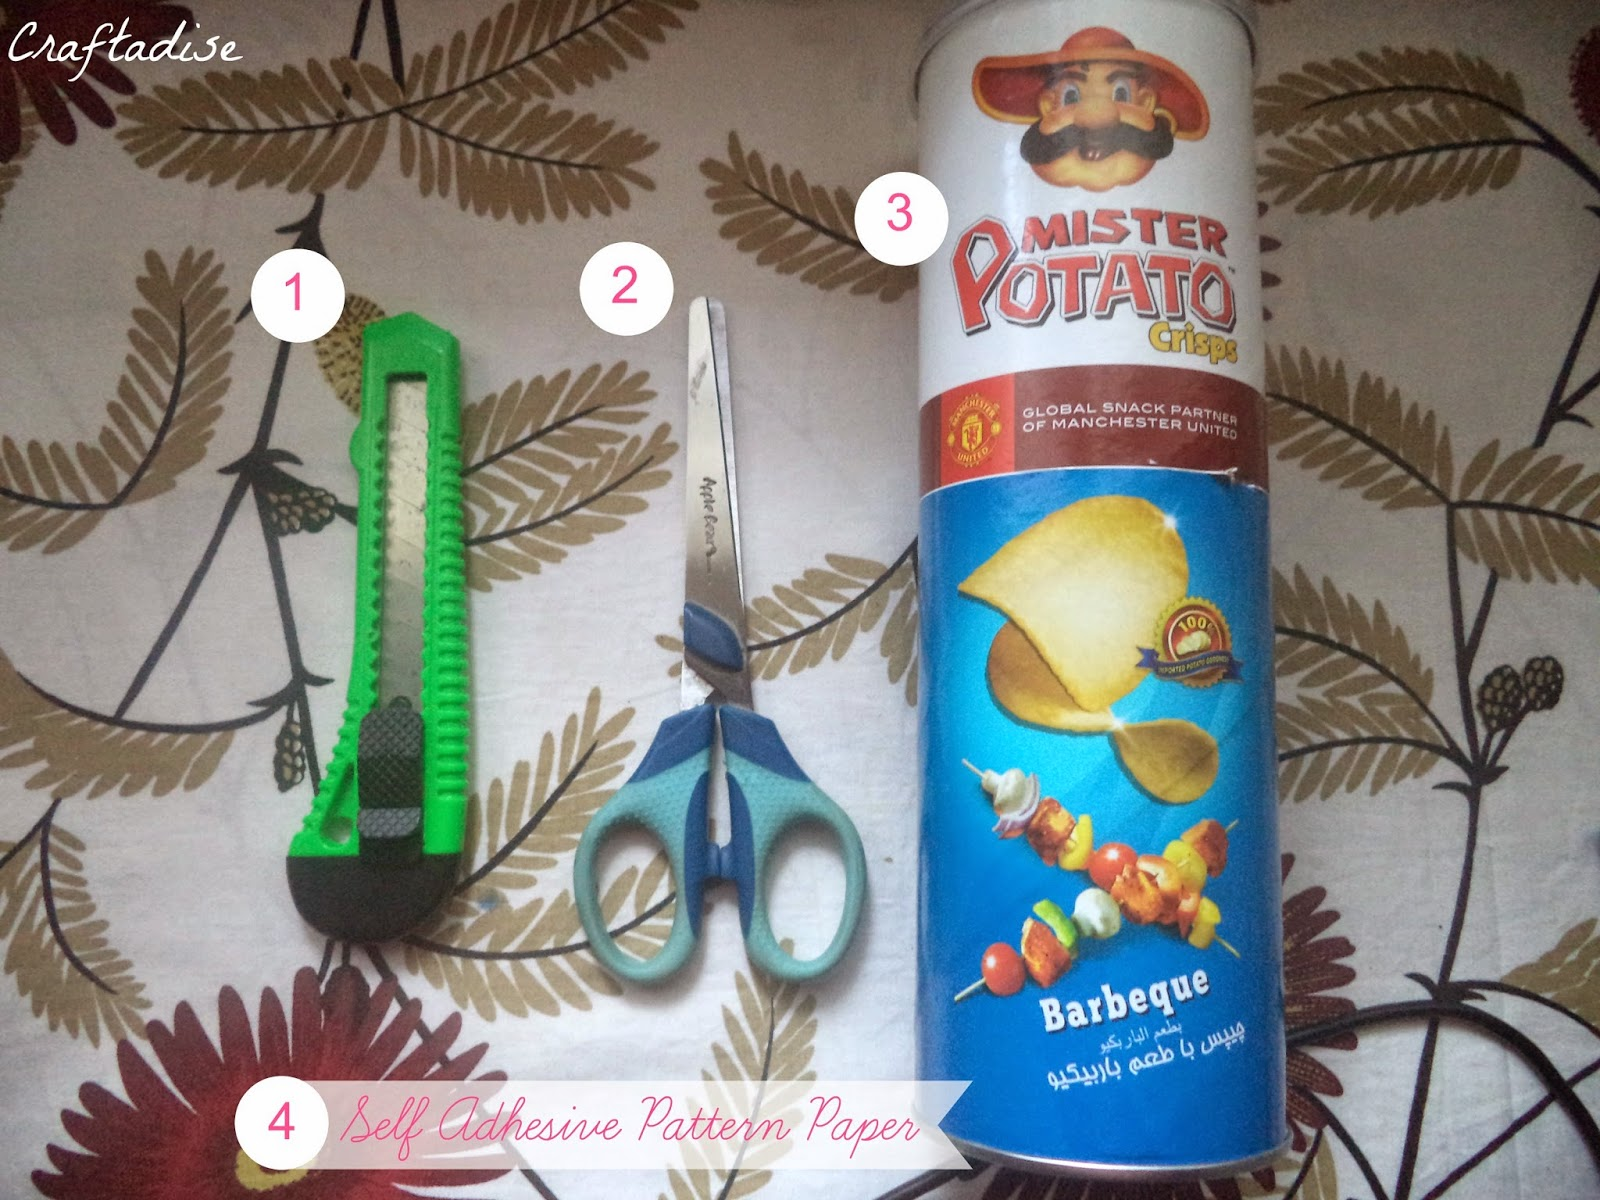 DIY: Mister Potato Crisps or Pringles Box turned Pencil and Crochet Hooks Stand